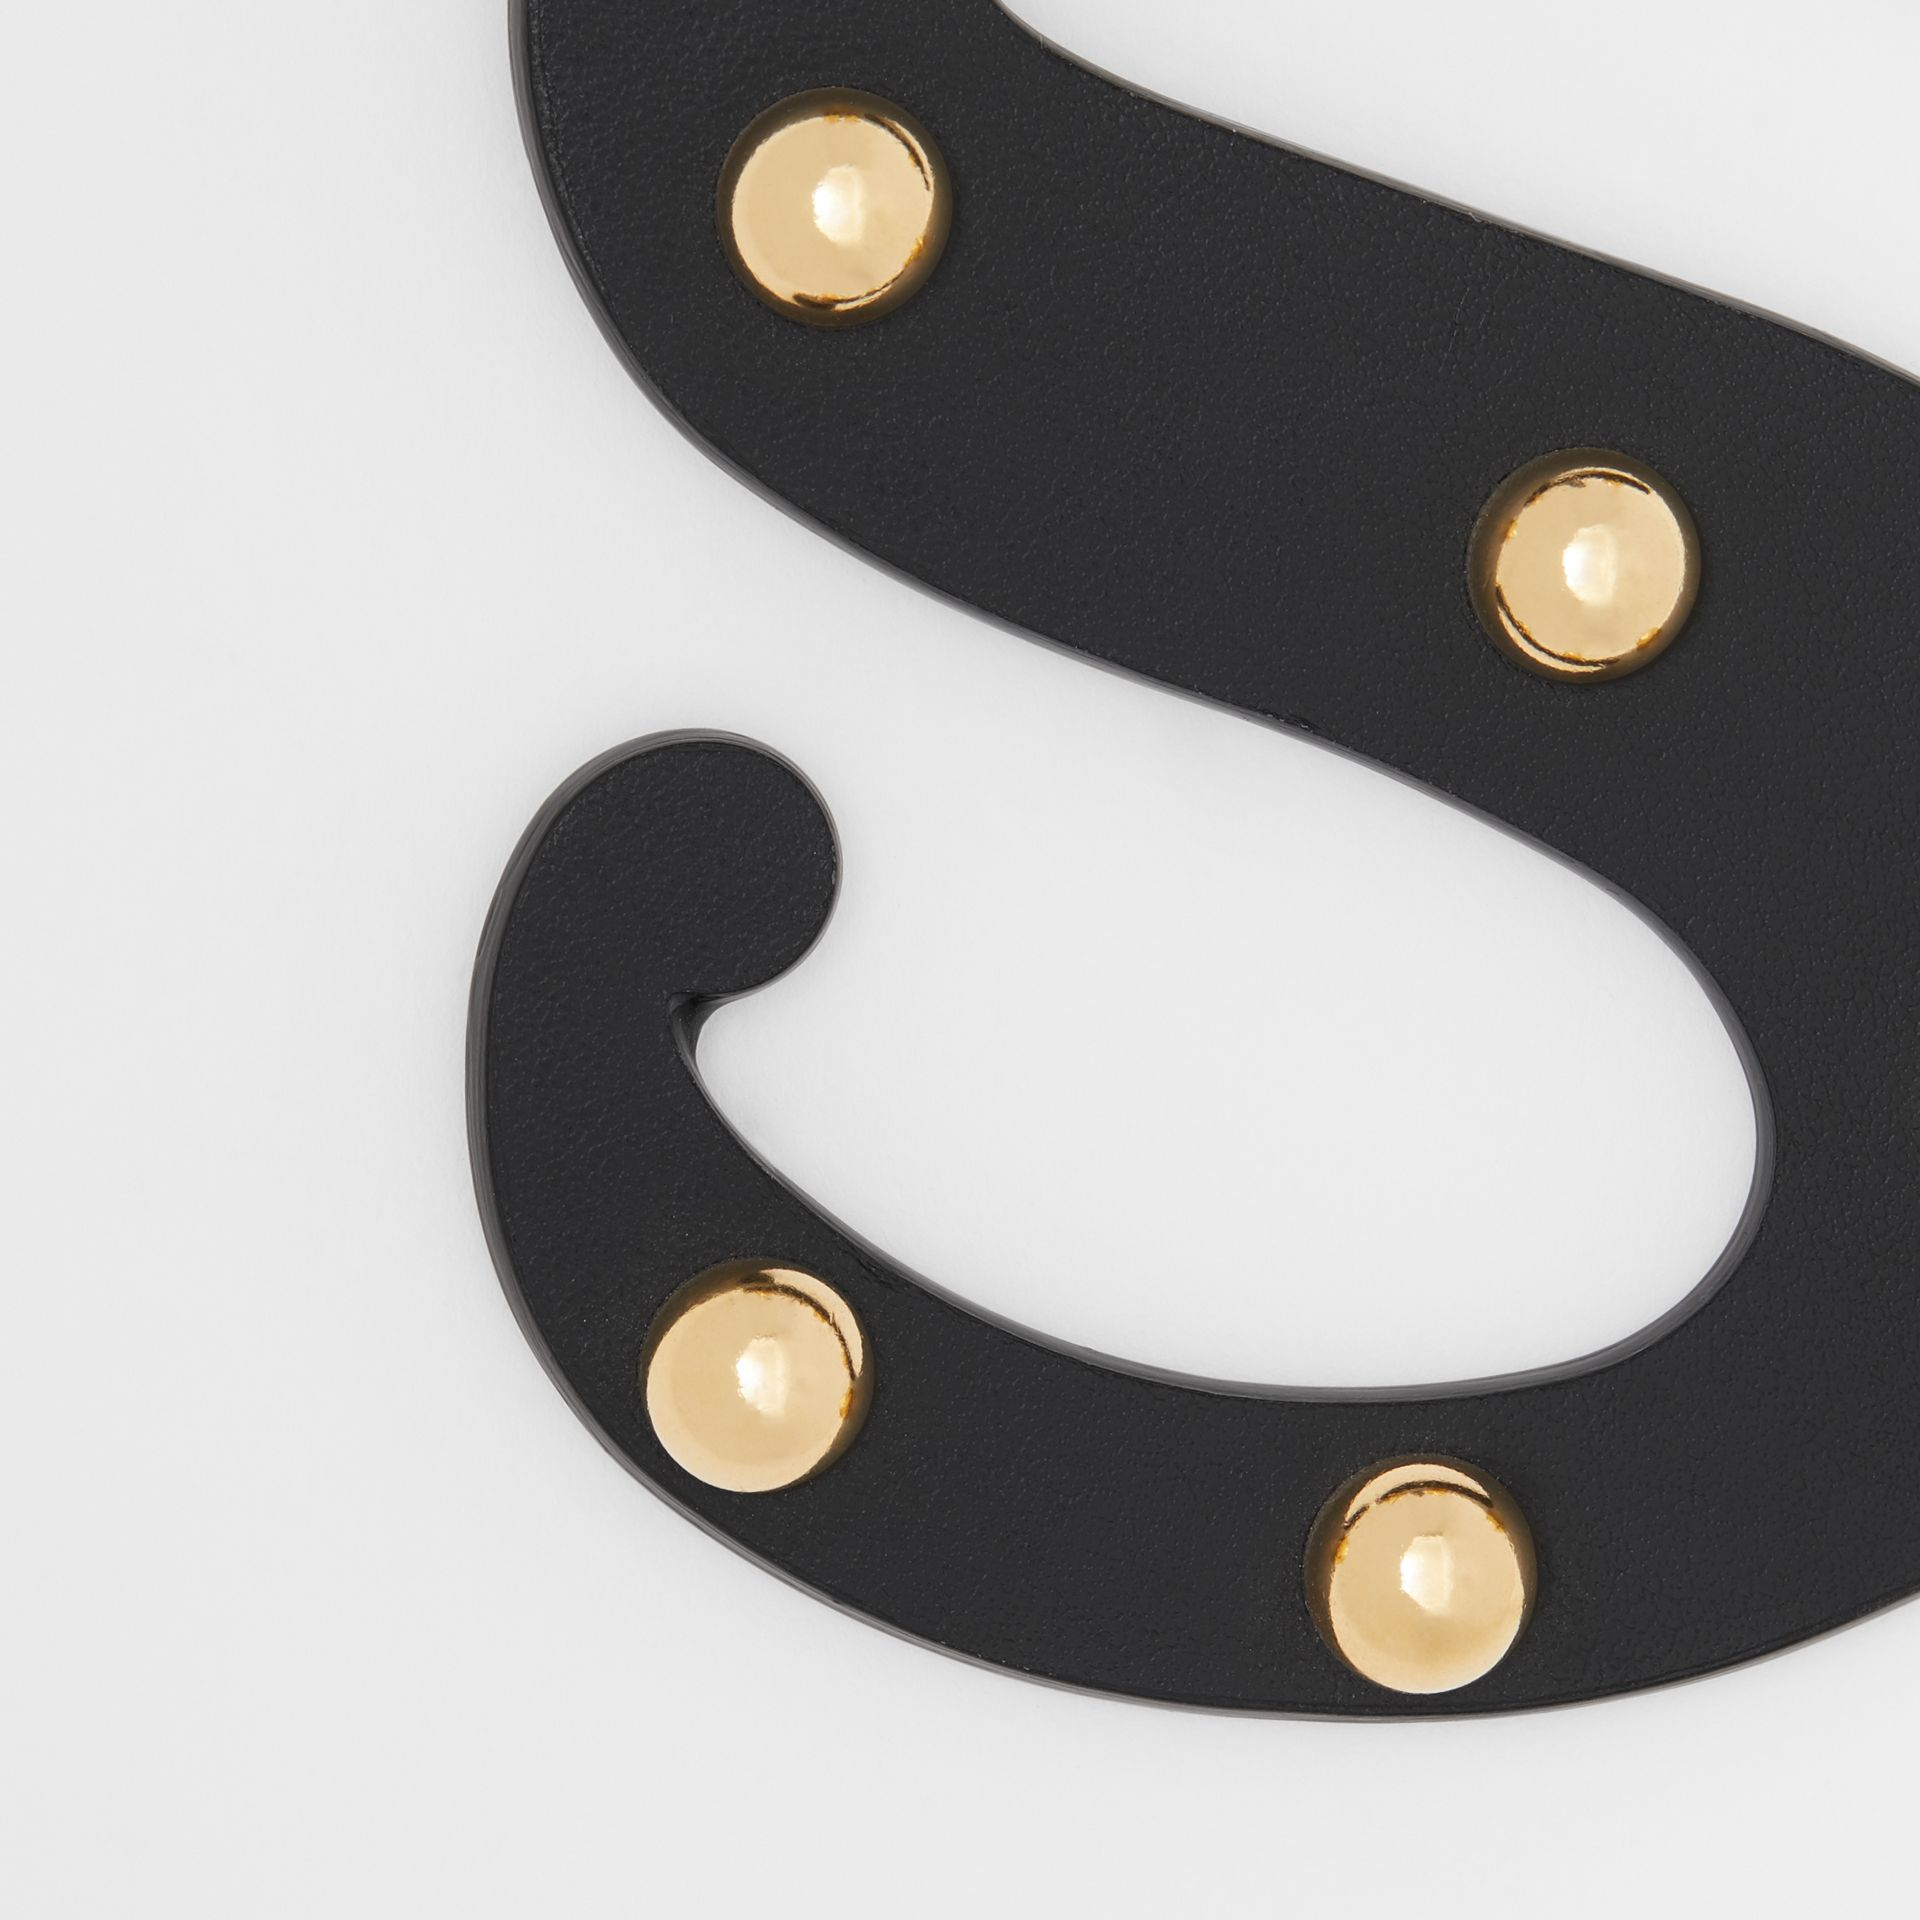 'S' Studded Leather Alphabet Charm in Black/light Gold - Women | Burberry Hong Kong S.A.R - gallery image 1